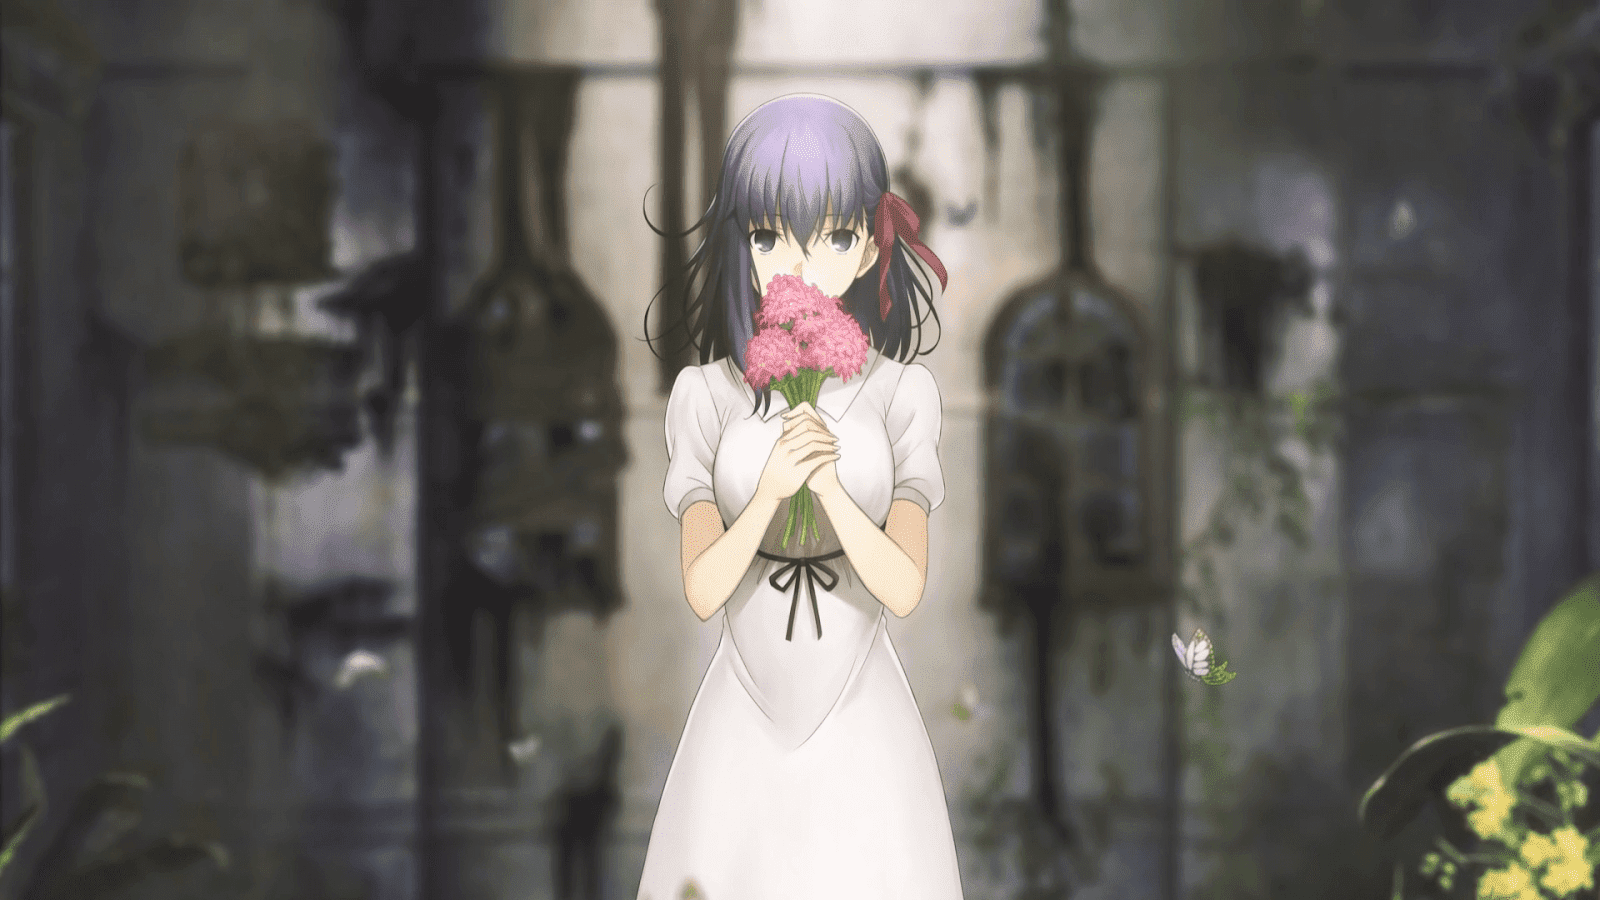 Fate/stay night [Heaven's Feel] 间桐樱 BGM [Wallpaper Engine Anime]